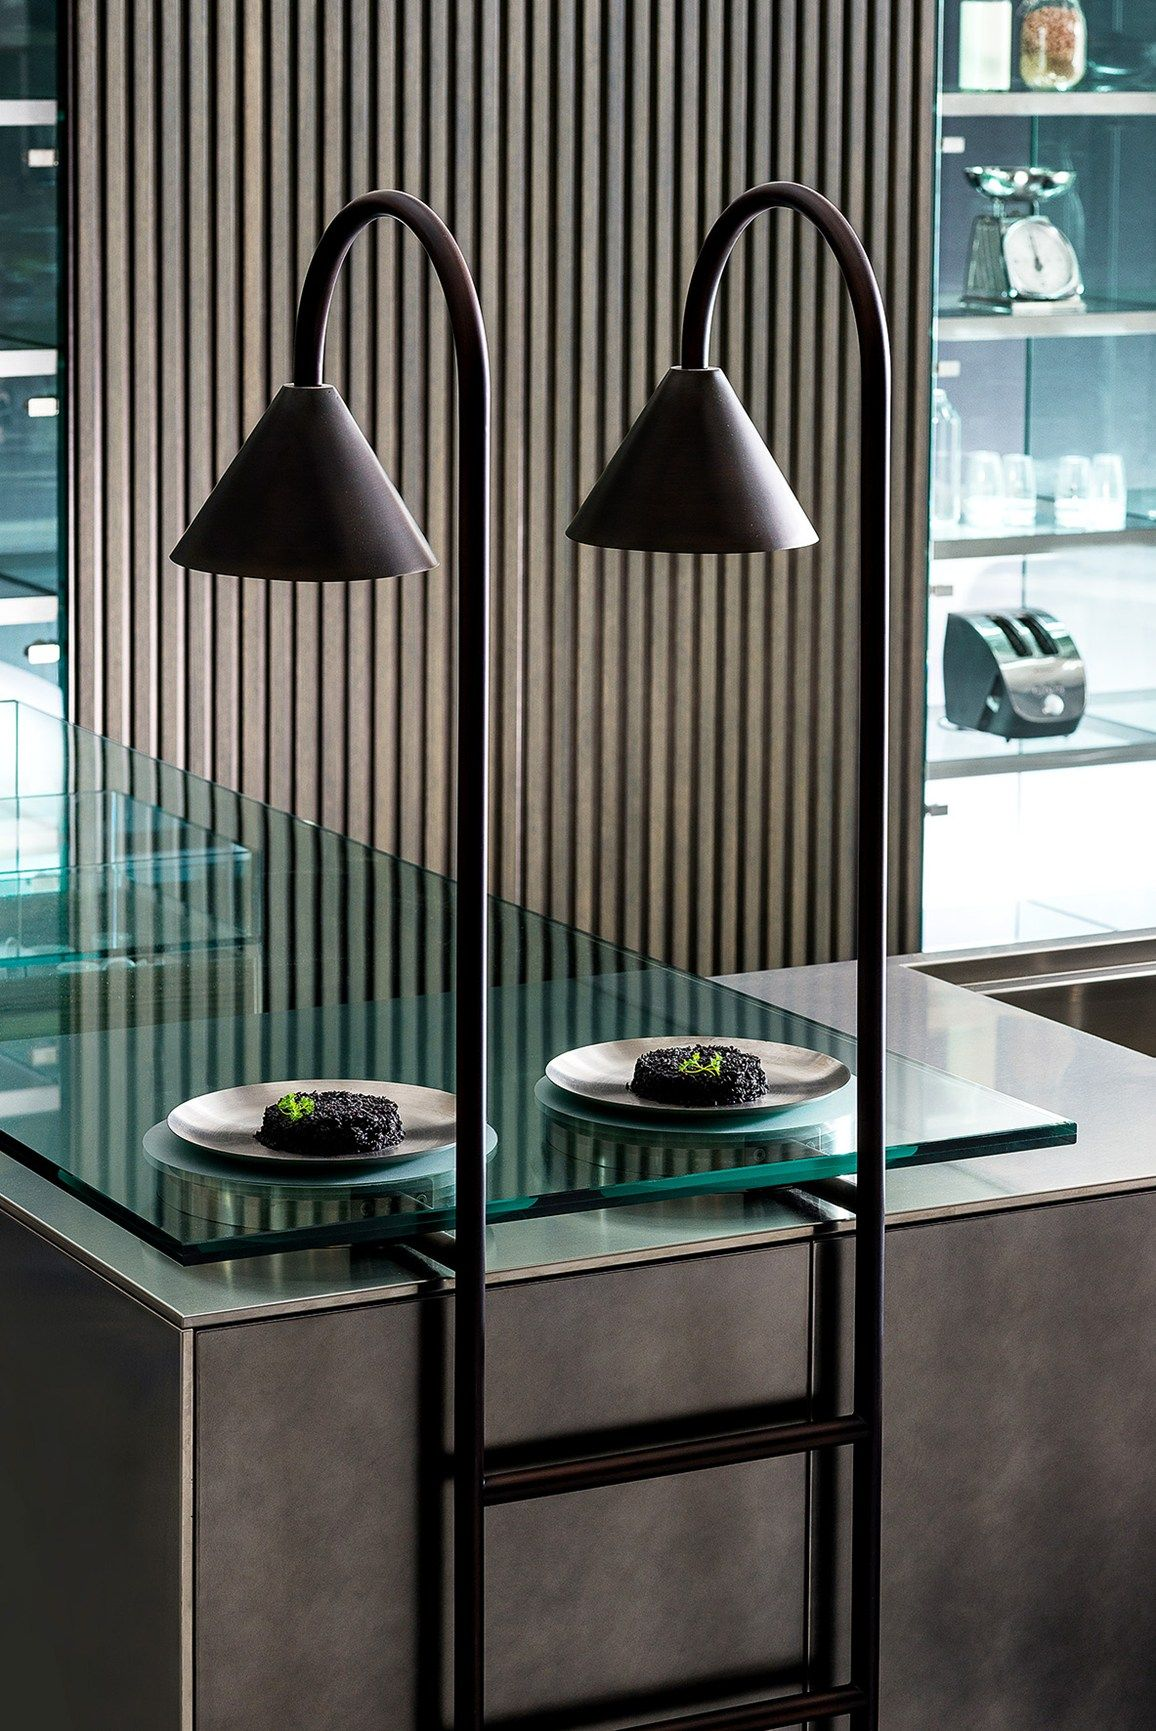 Futuristic cityscapes for kitchen by @tmitaliacucine